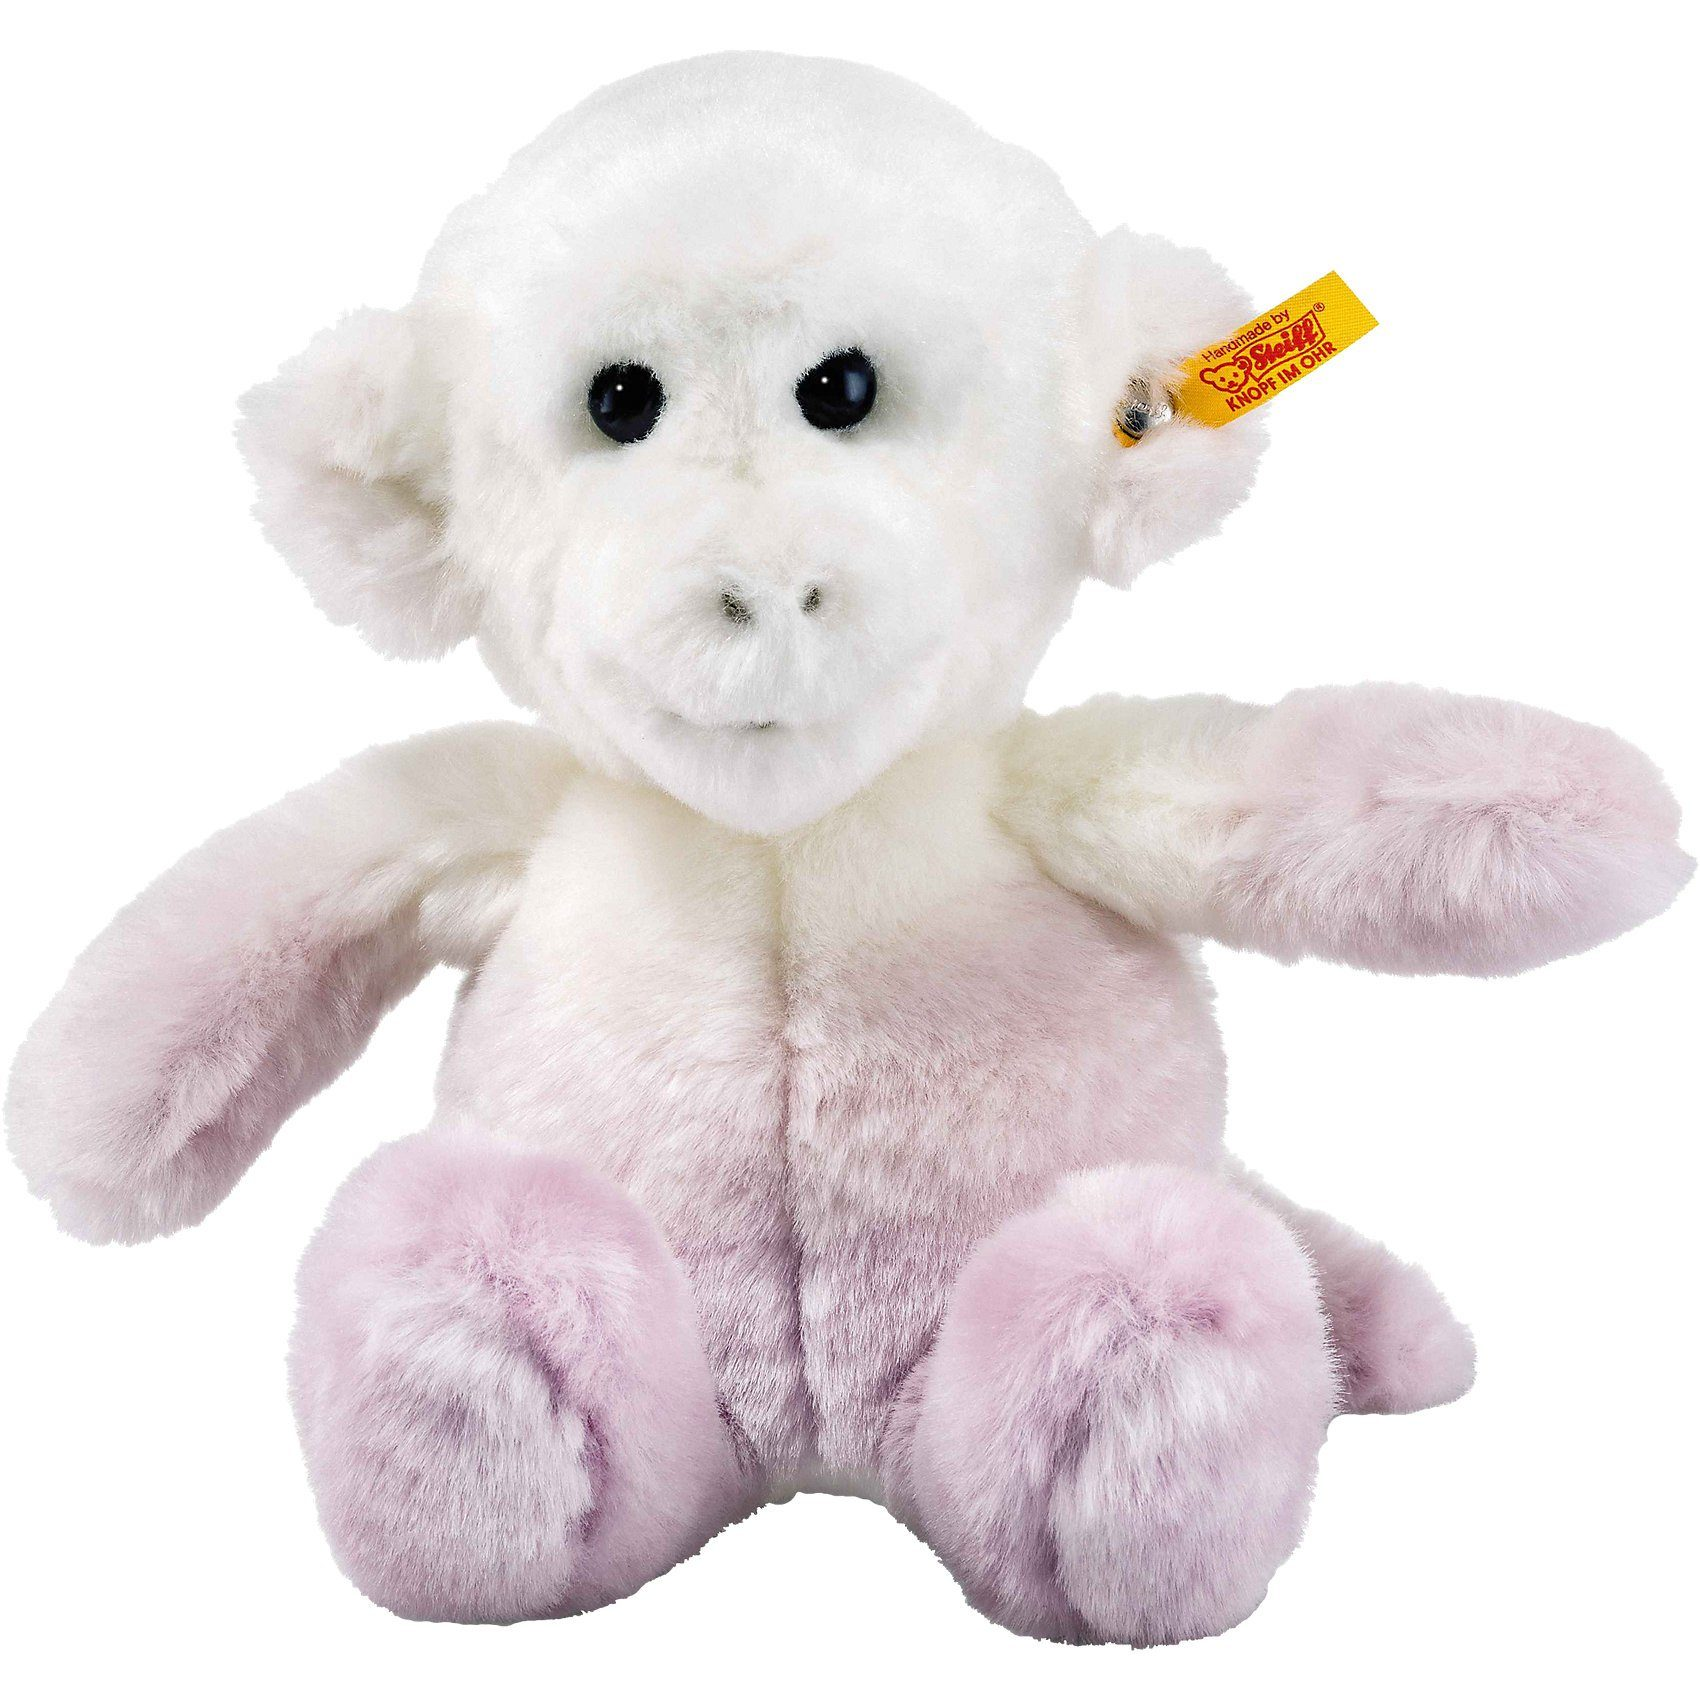 Steiff Soft Cuddly Friends Moonlight lila/weiss, 20 cm